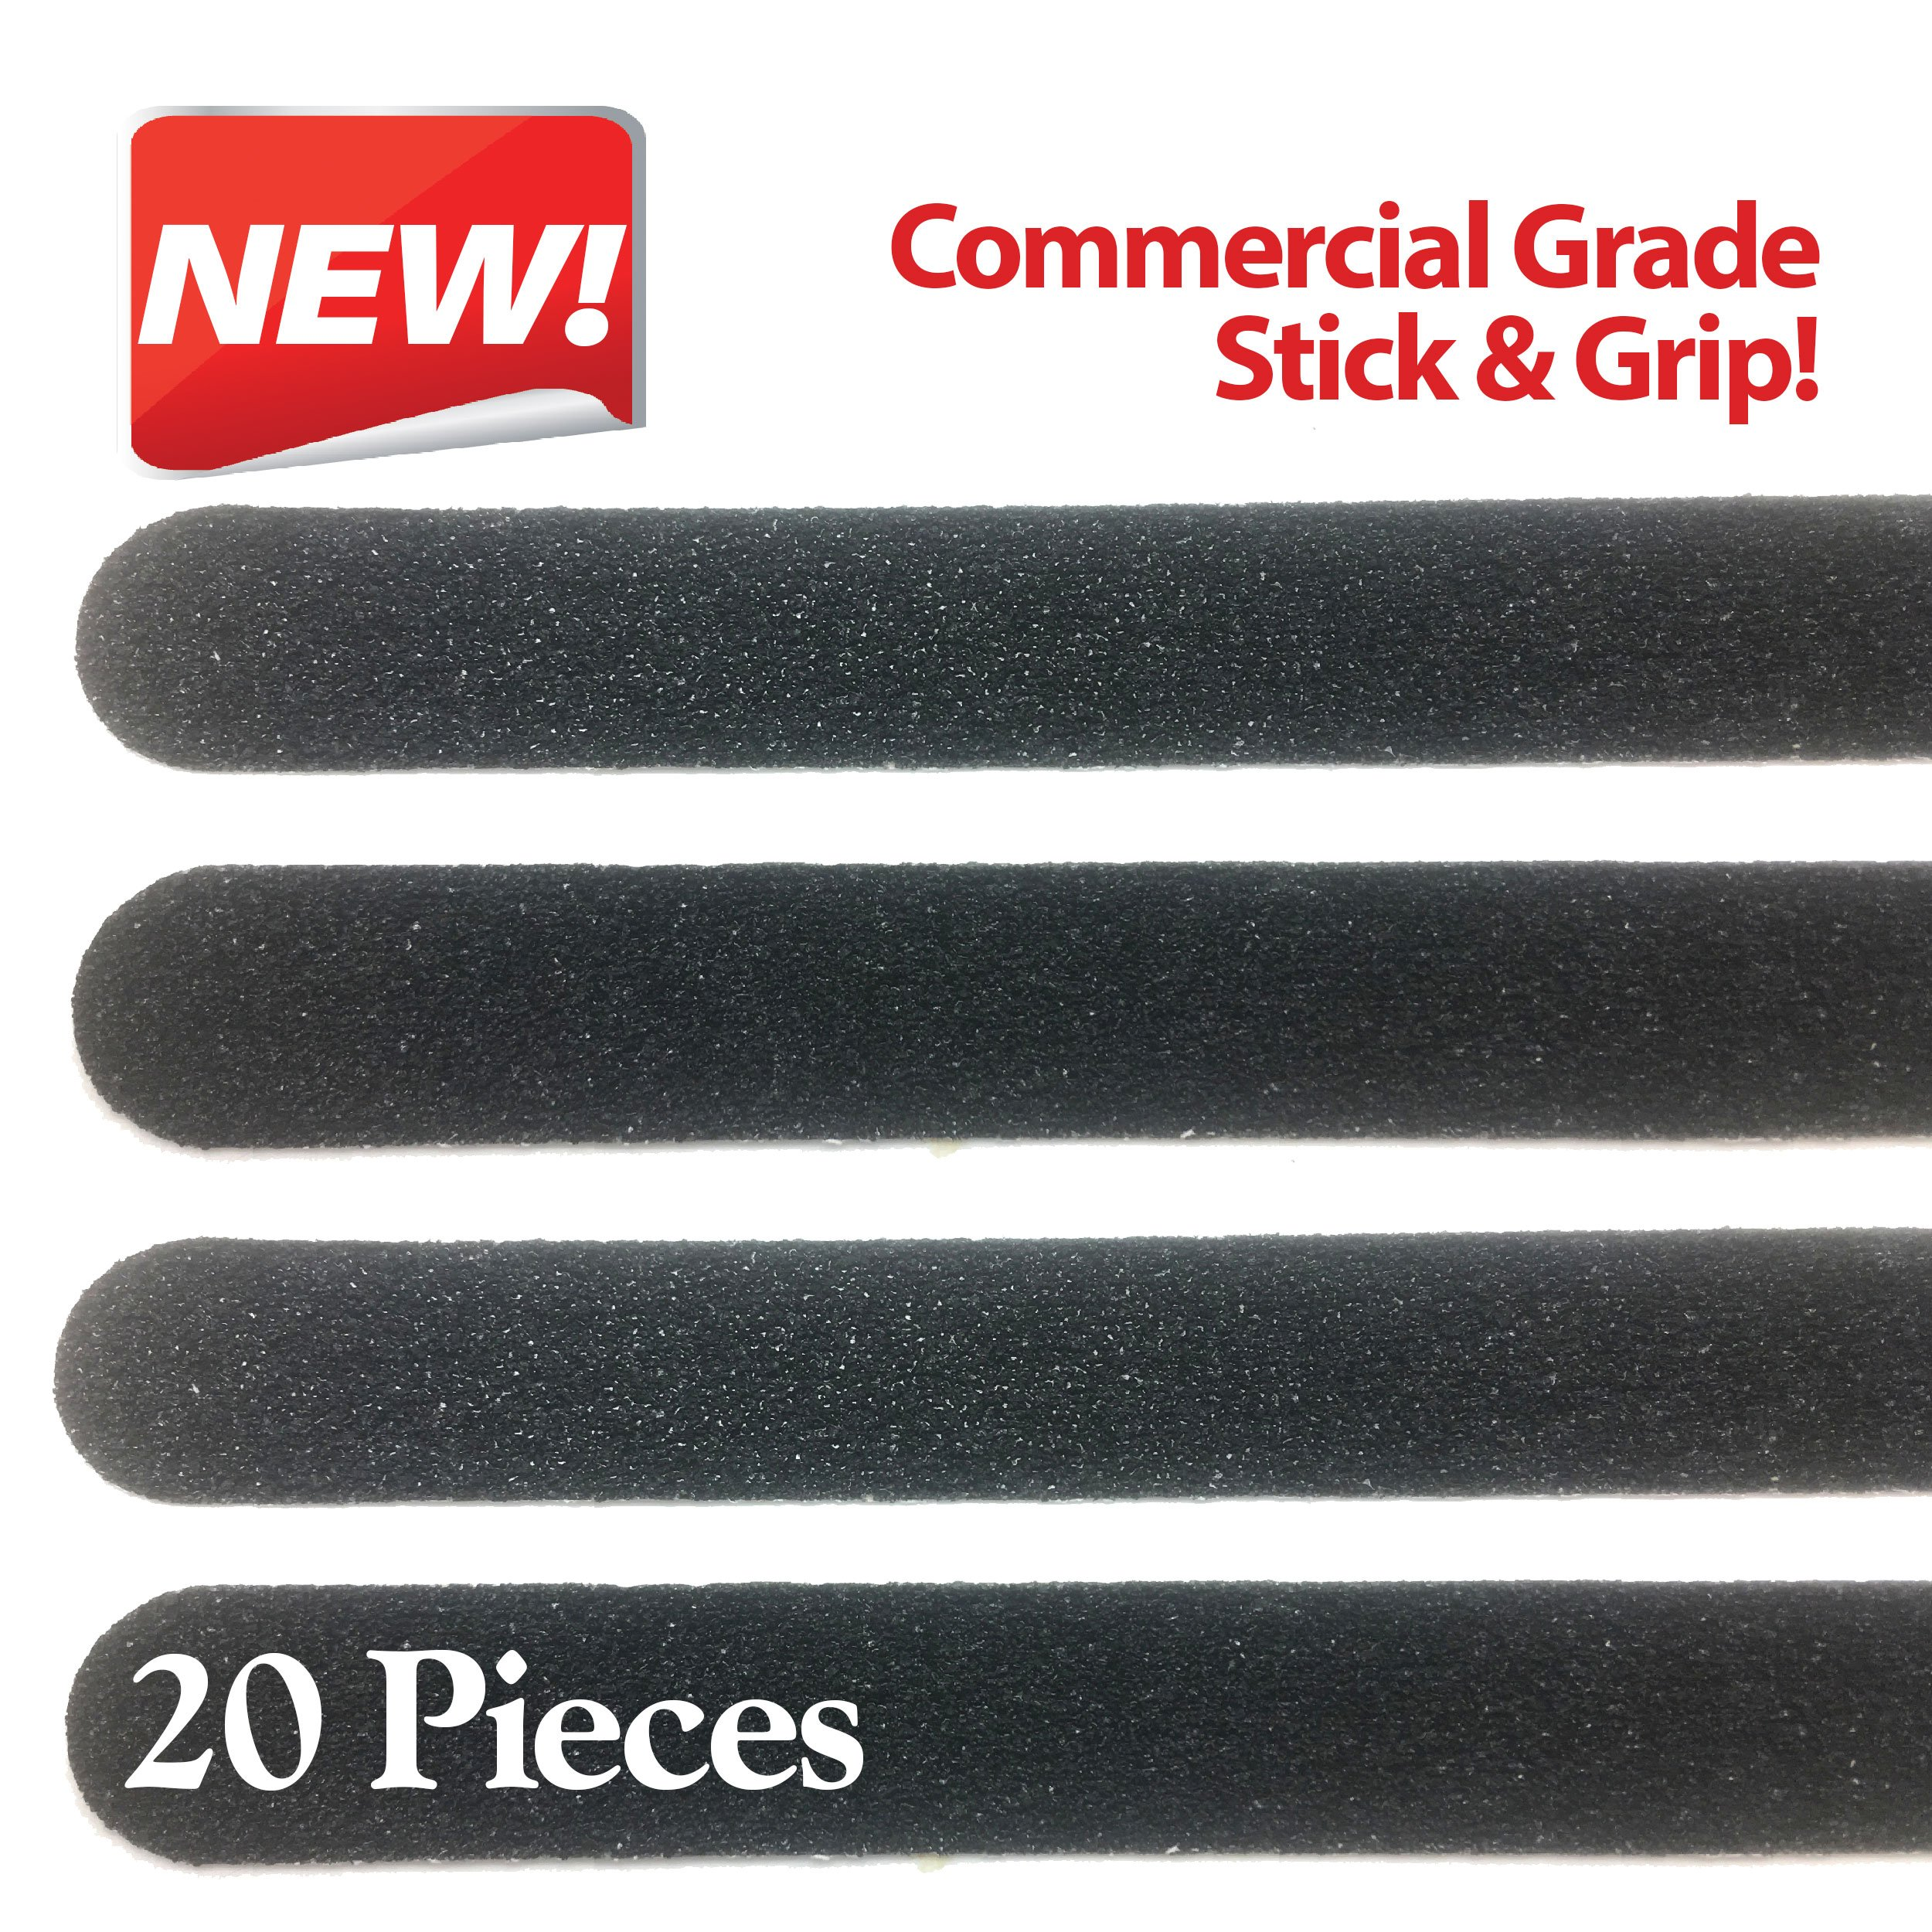 Non Slip Stair & Floor Grip Strips 20 Pre-cut strips 1'' x 15.5'' Anti slip safety tape: Waterproof-Indoor/Outdoor-Commercial adhesive & grit-Prevent Falls.Cars Trucks and Trailers too